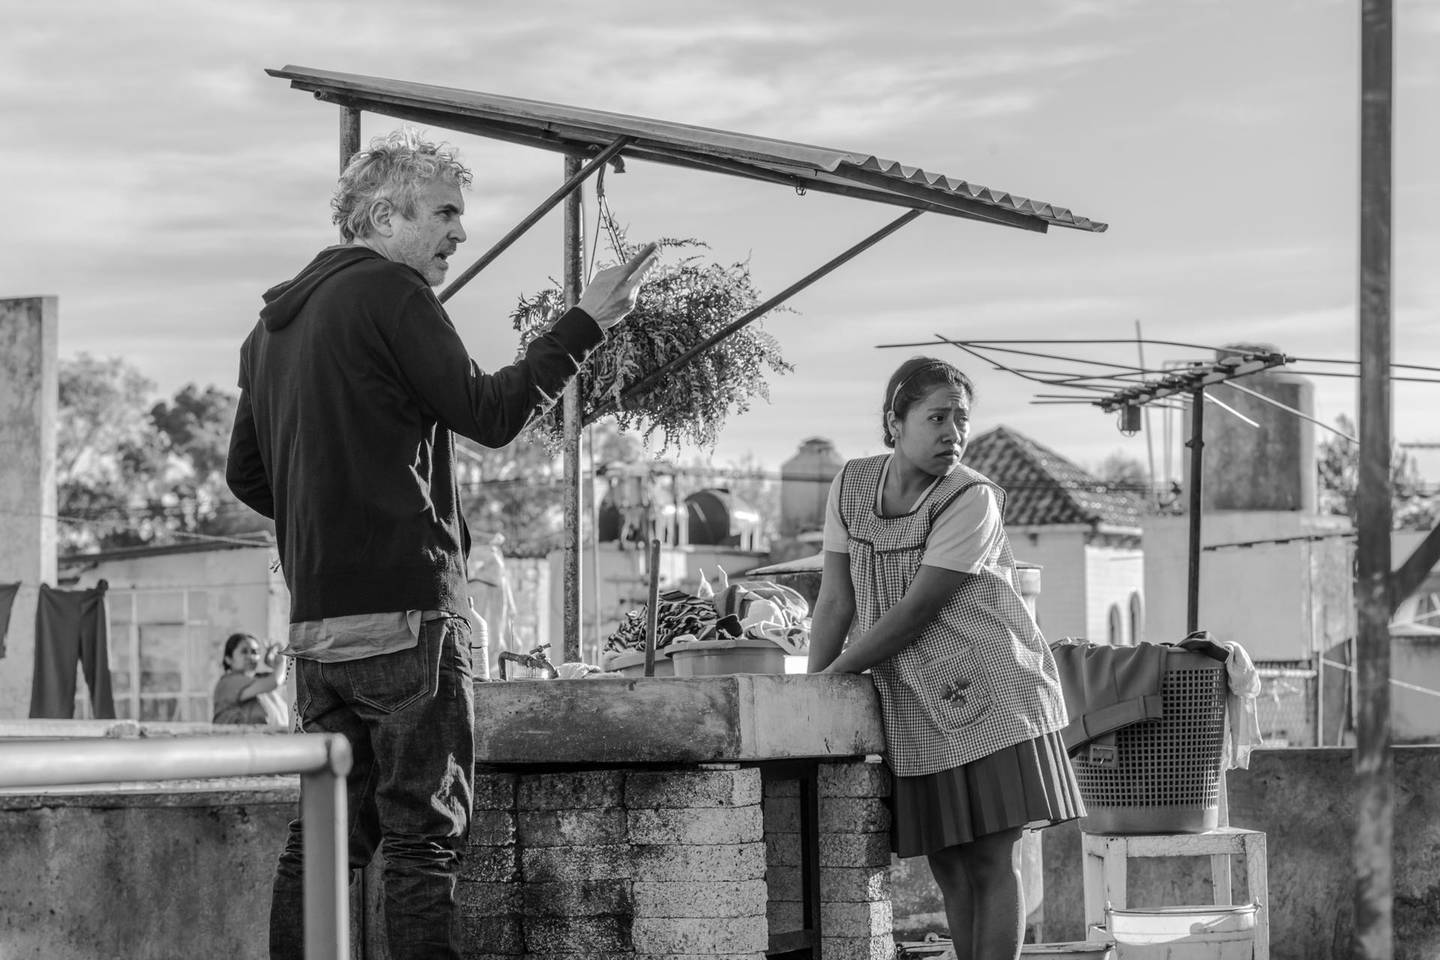 """This image released by Netflix shows filmmaker Alfonso Cuaron, left, and actress Yalitza Aparicio on the set of """"Roma."""" On Thursday, Dec. 6, 2018, Cuaron was nominated for a Golden Globe award for best director for the film. The 76th Golden Globe Awards will be held on Sunday, Jan. 6. (Carlos Somonte/Netflix via AP)"""